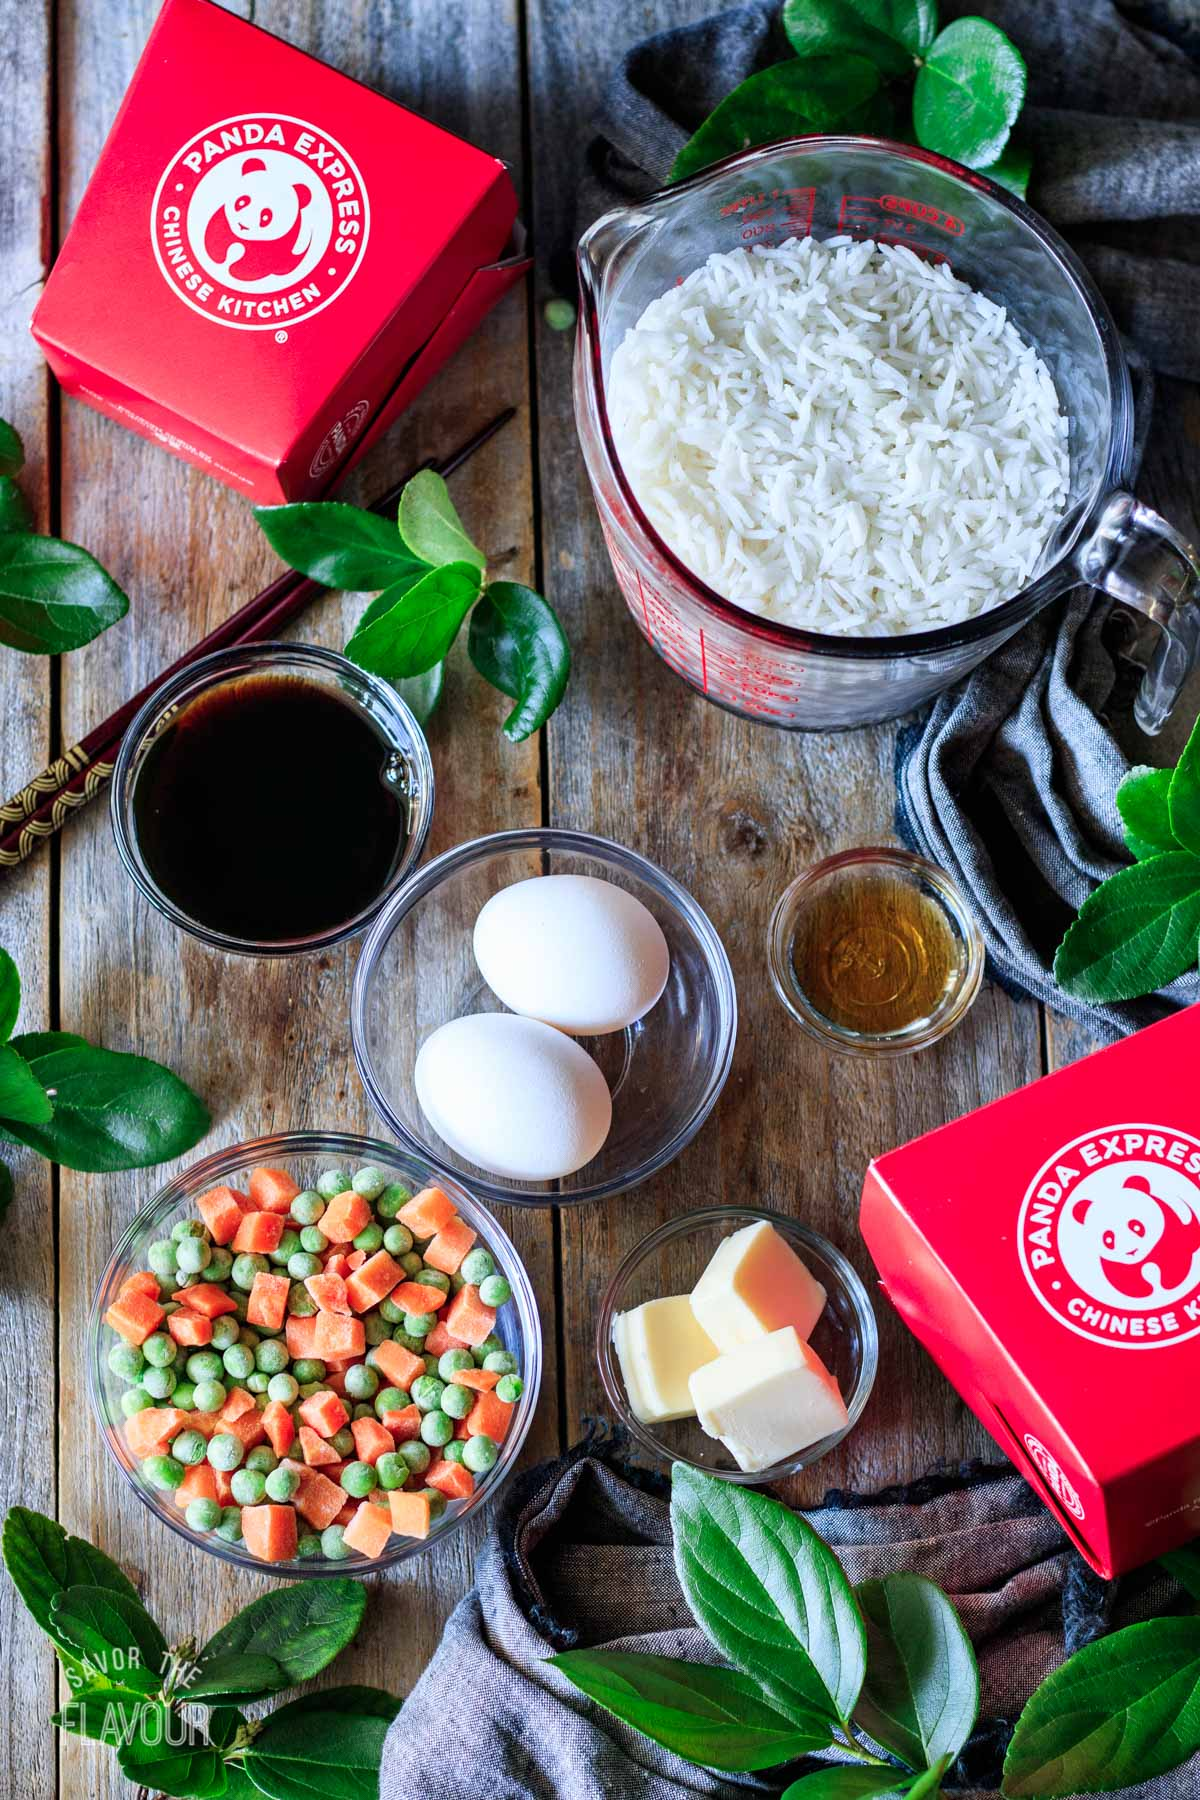 bowls of ingredients for copycat Panda Express fried rice